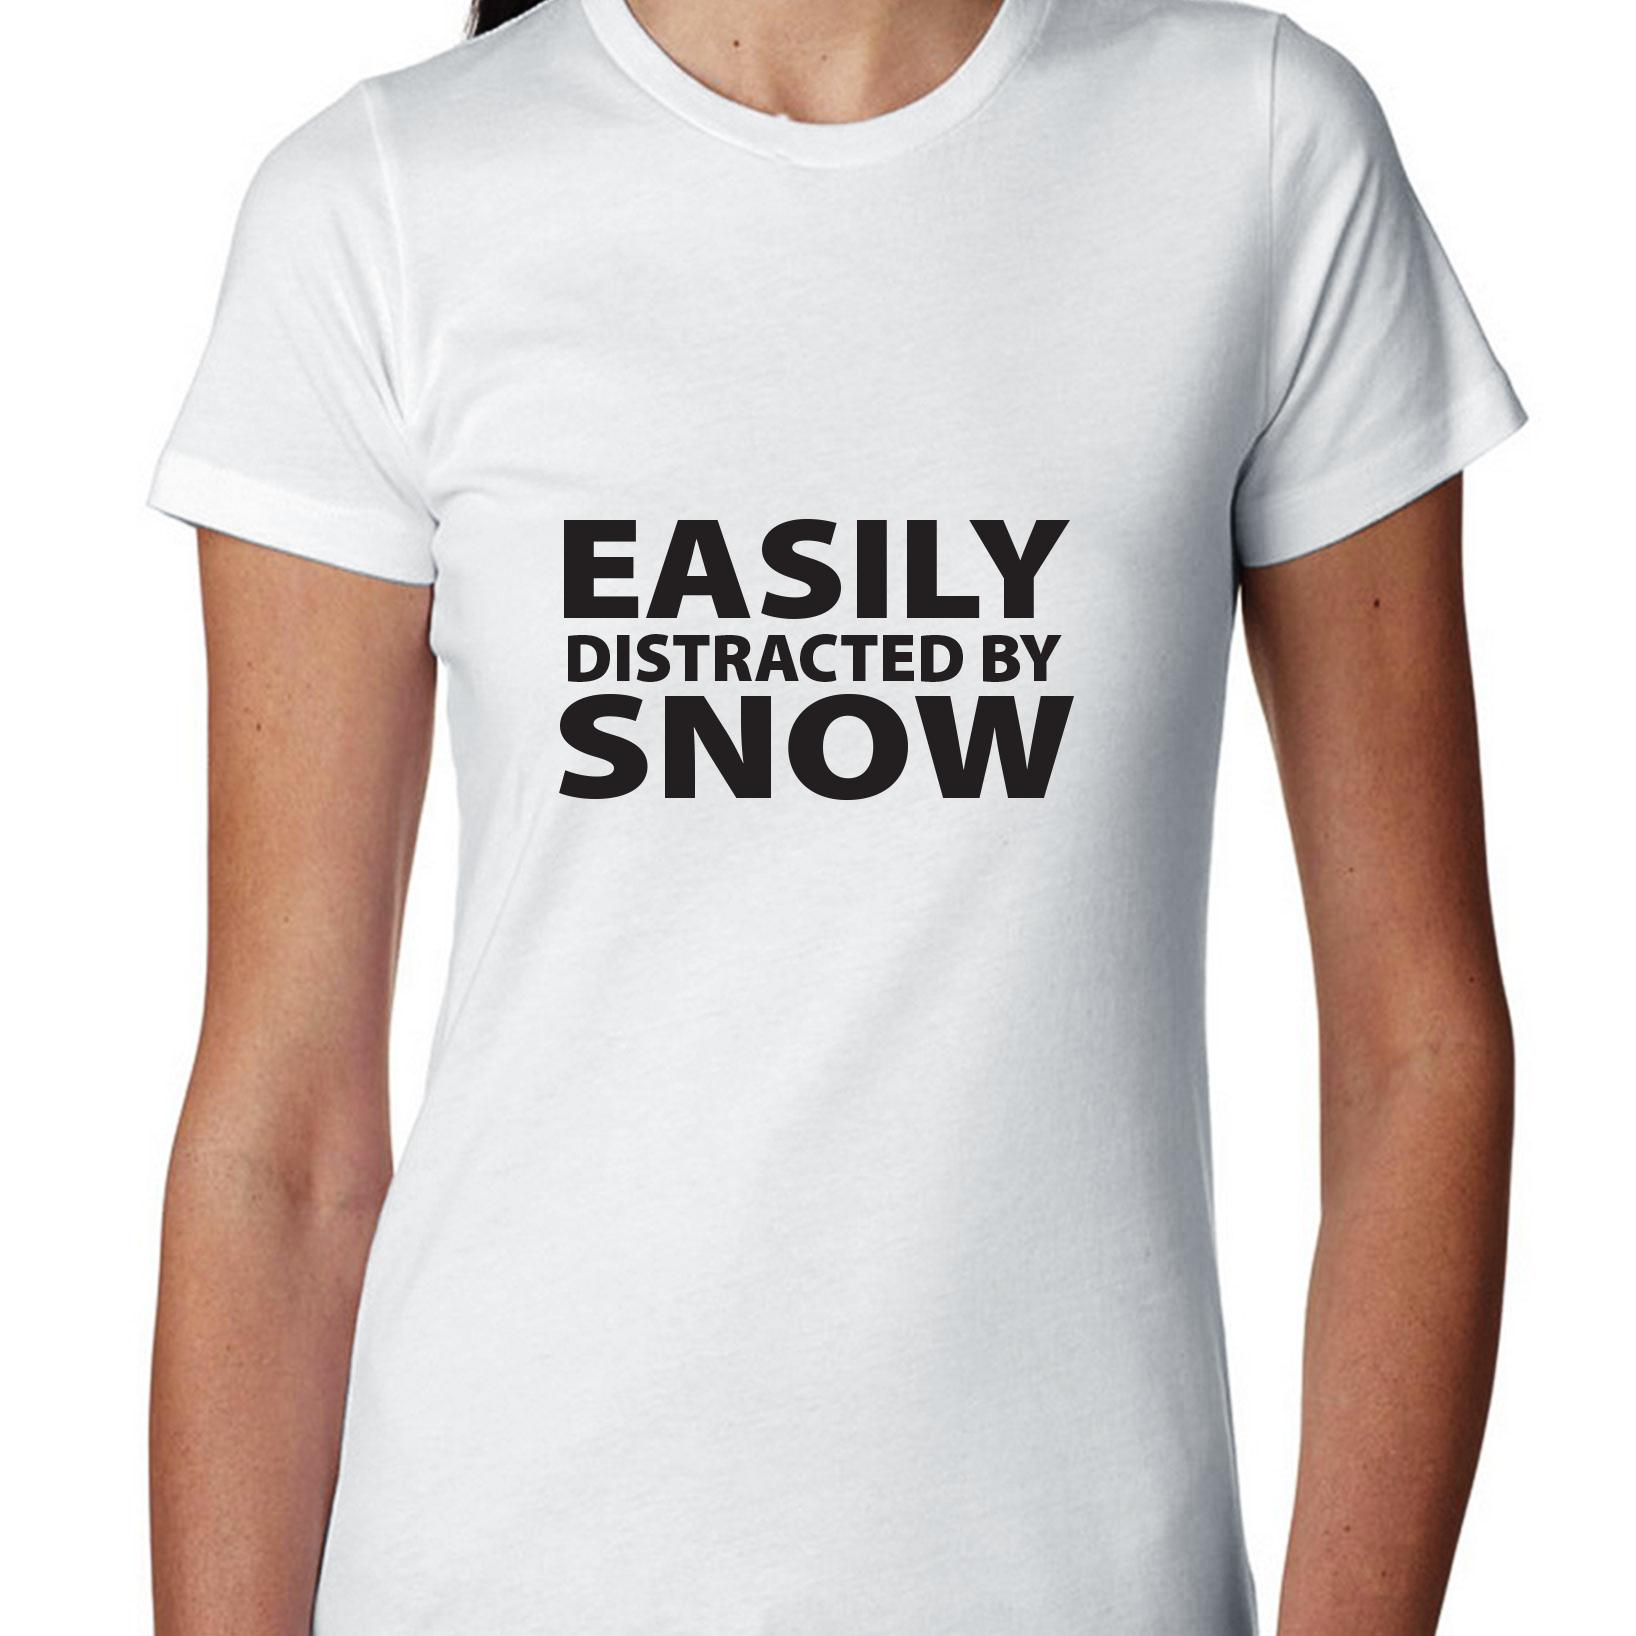 Easily Distracted By Snow Skiing Snowboarding Women's Cotton T-Shirt by Hollywood Thread